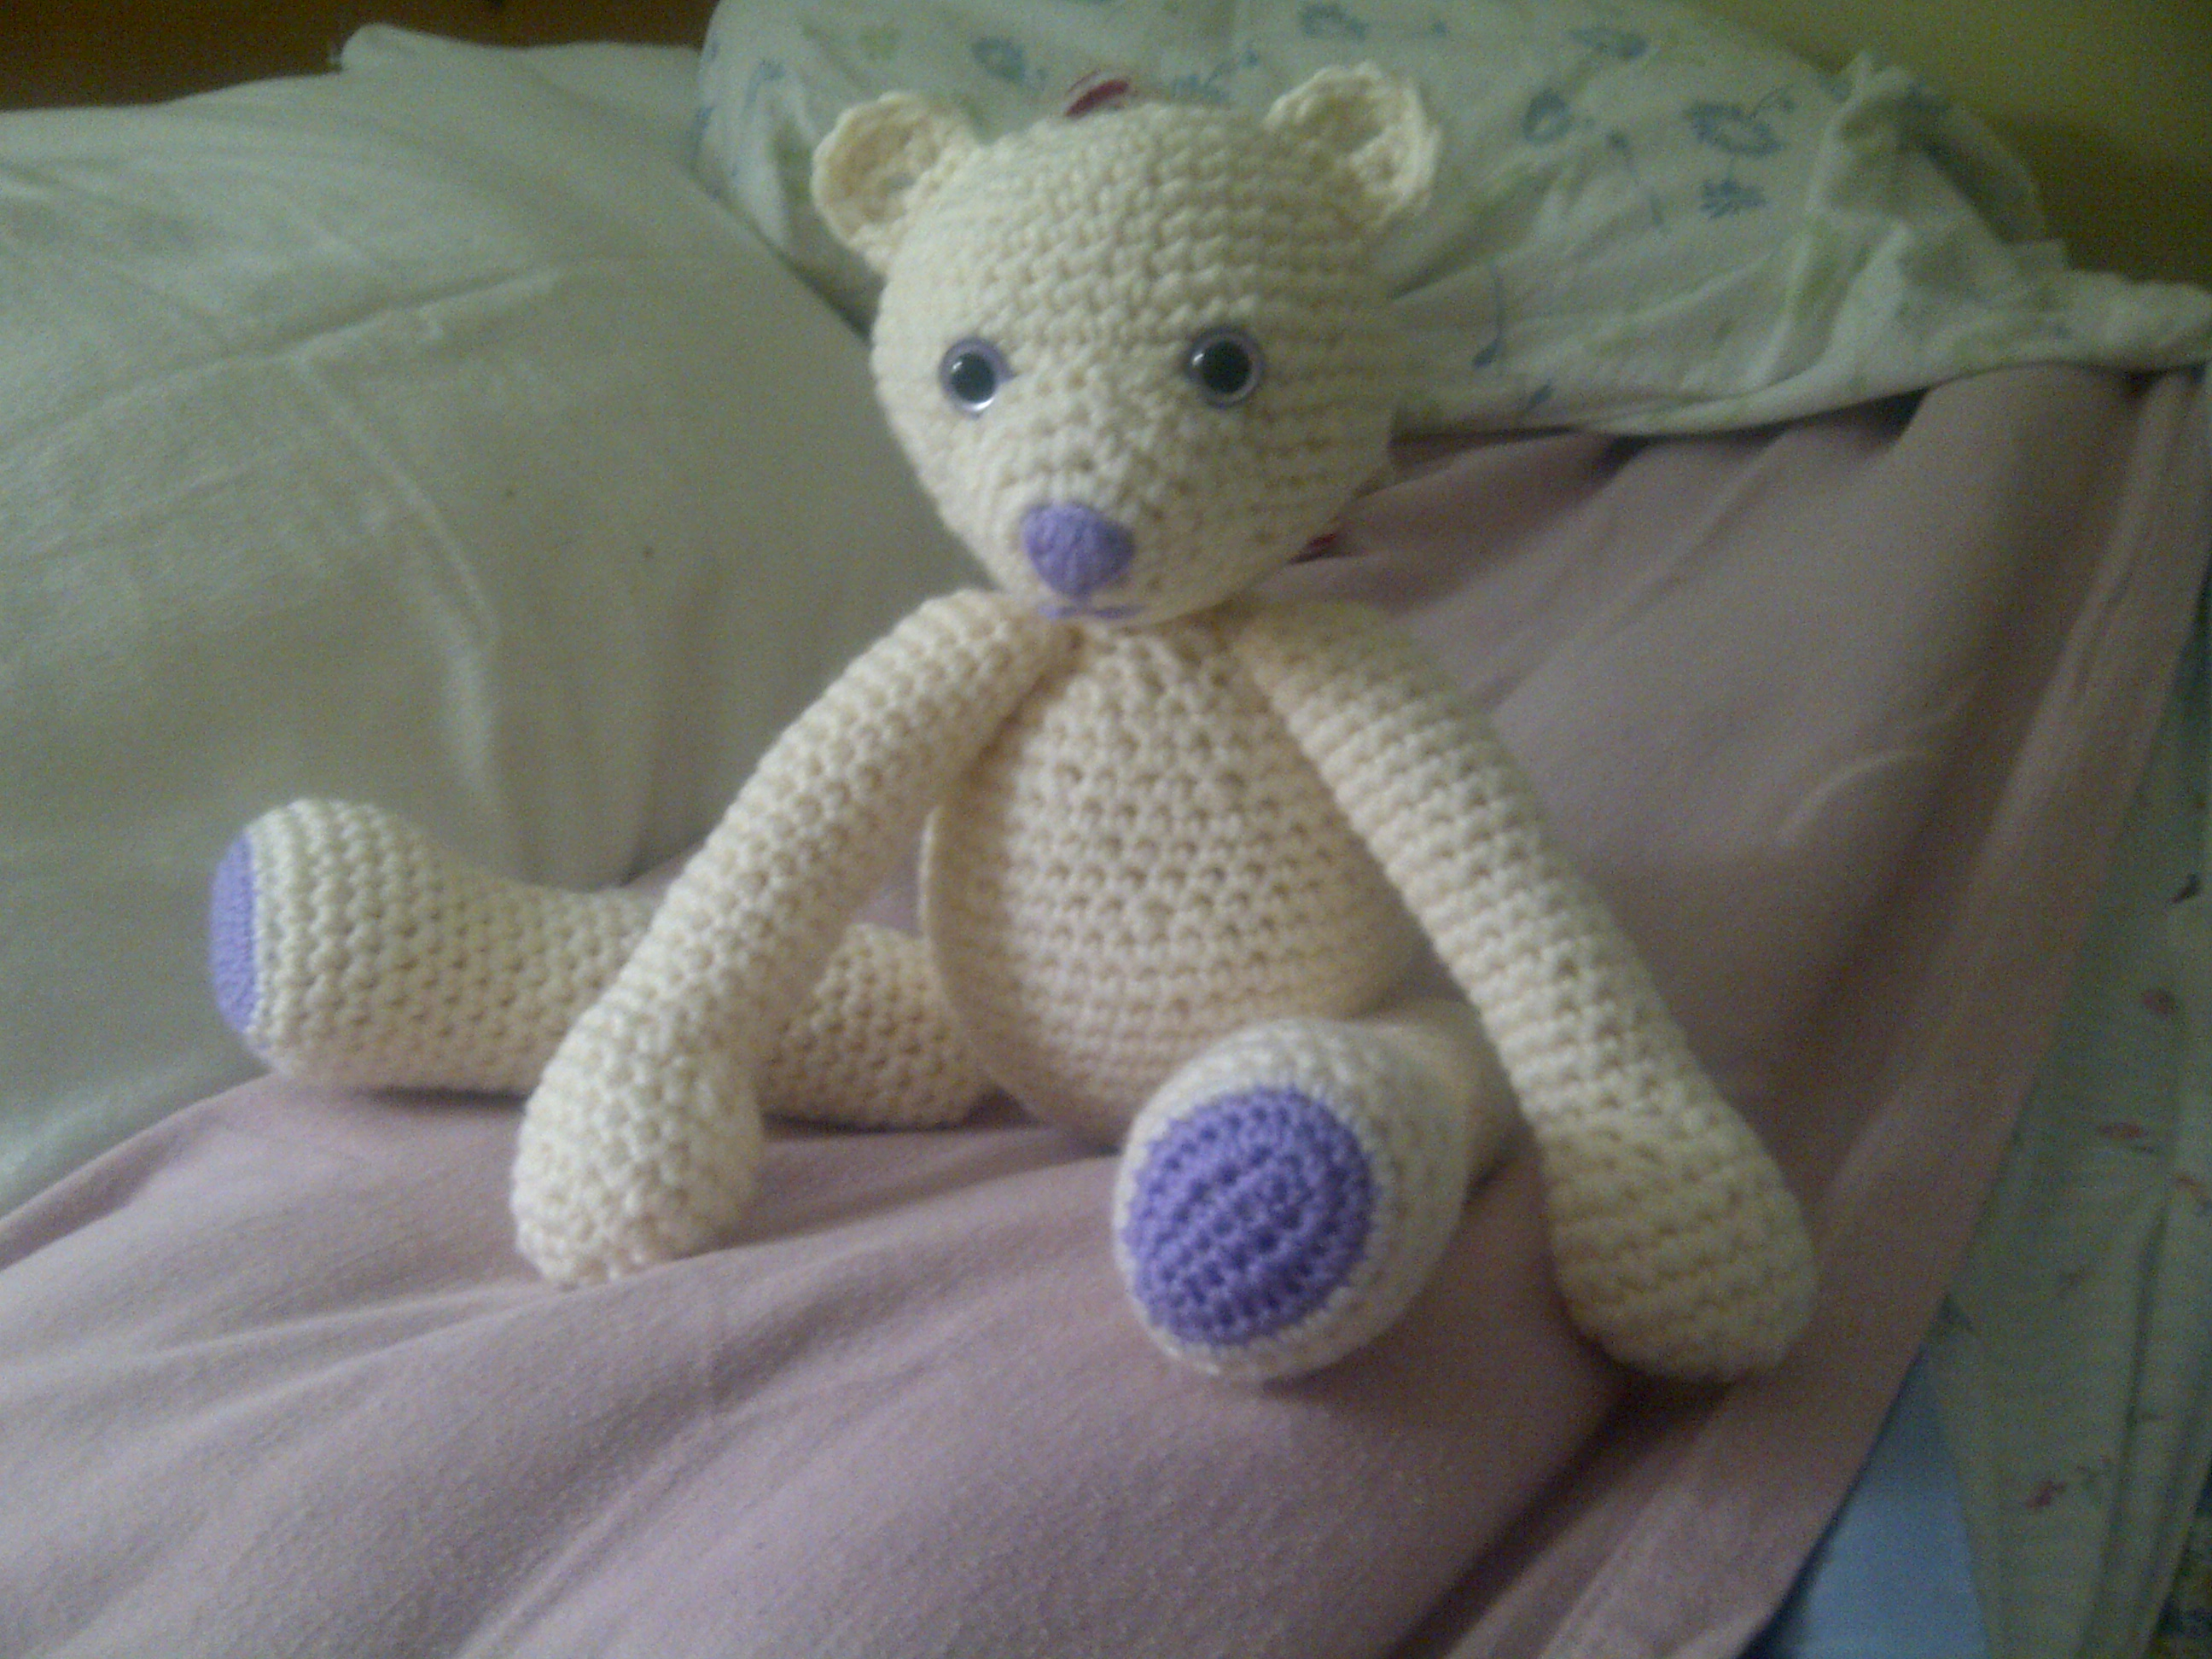 Crochet Teddy Bear : ... CROCHET PATTERN TO MAKE TEDDY BEAR - Easy Crochet Patterns